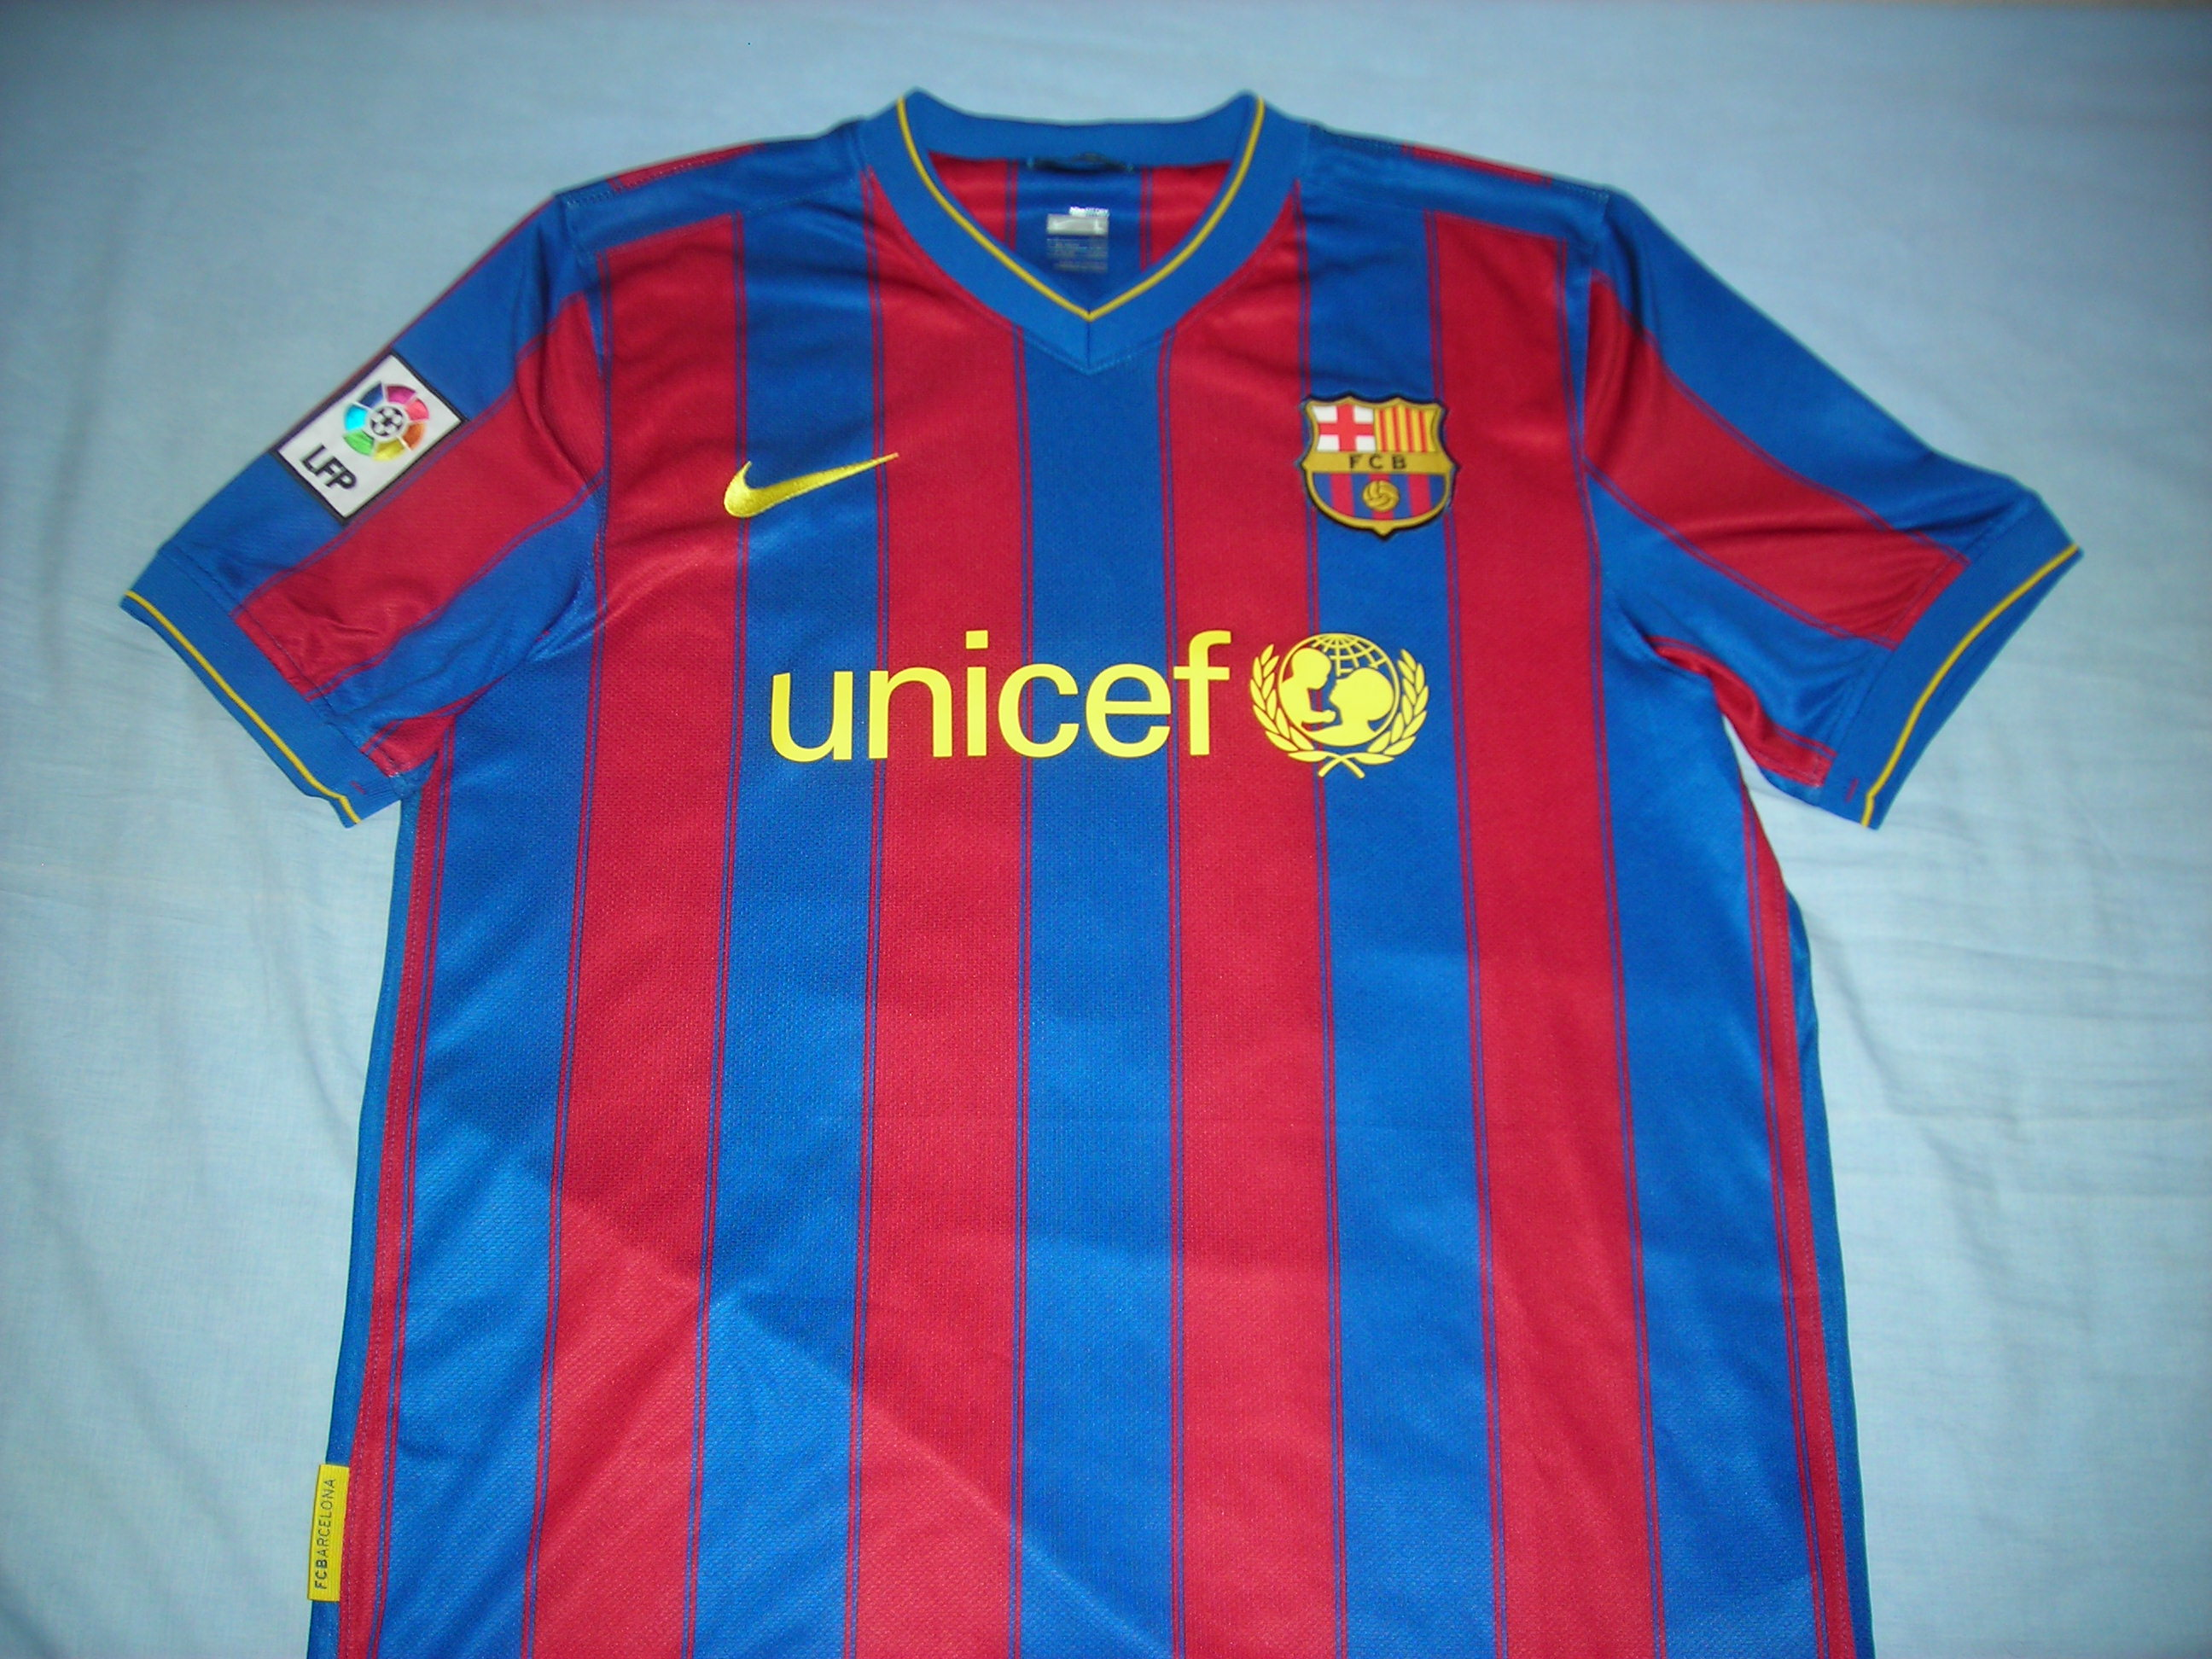 barcelona domicile maillot de foot 2009 2010 ajout 2010 04 13 14 21. Black Bedroom Furniture Sets. Home Design Ideas